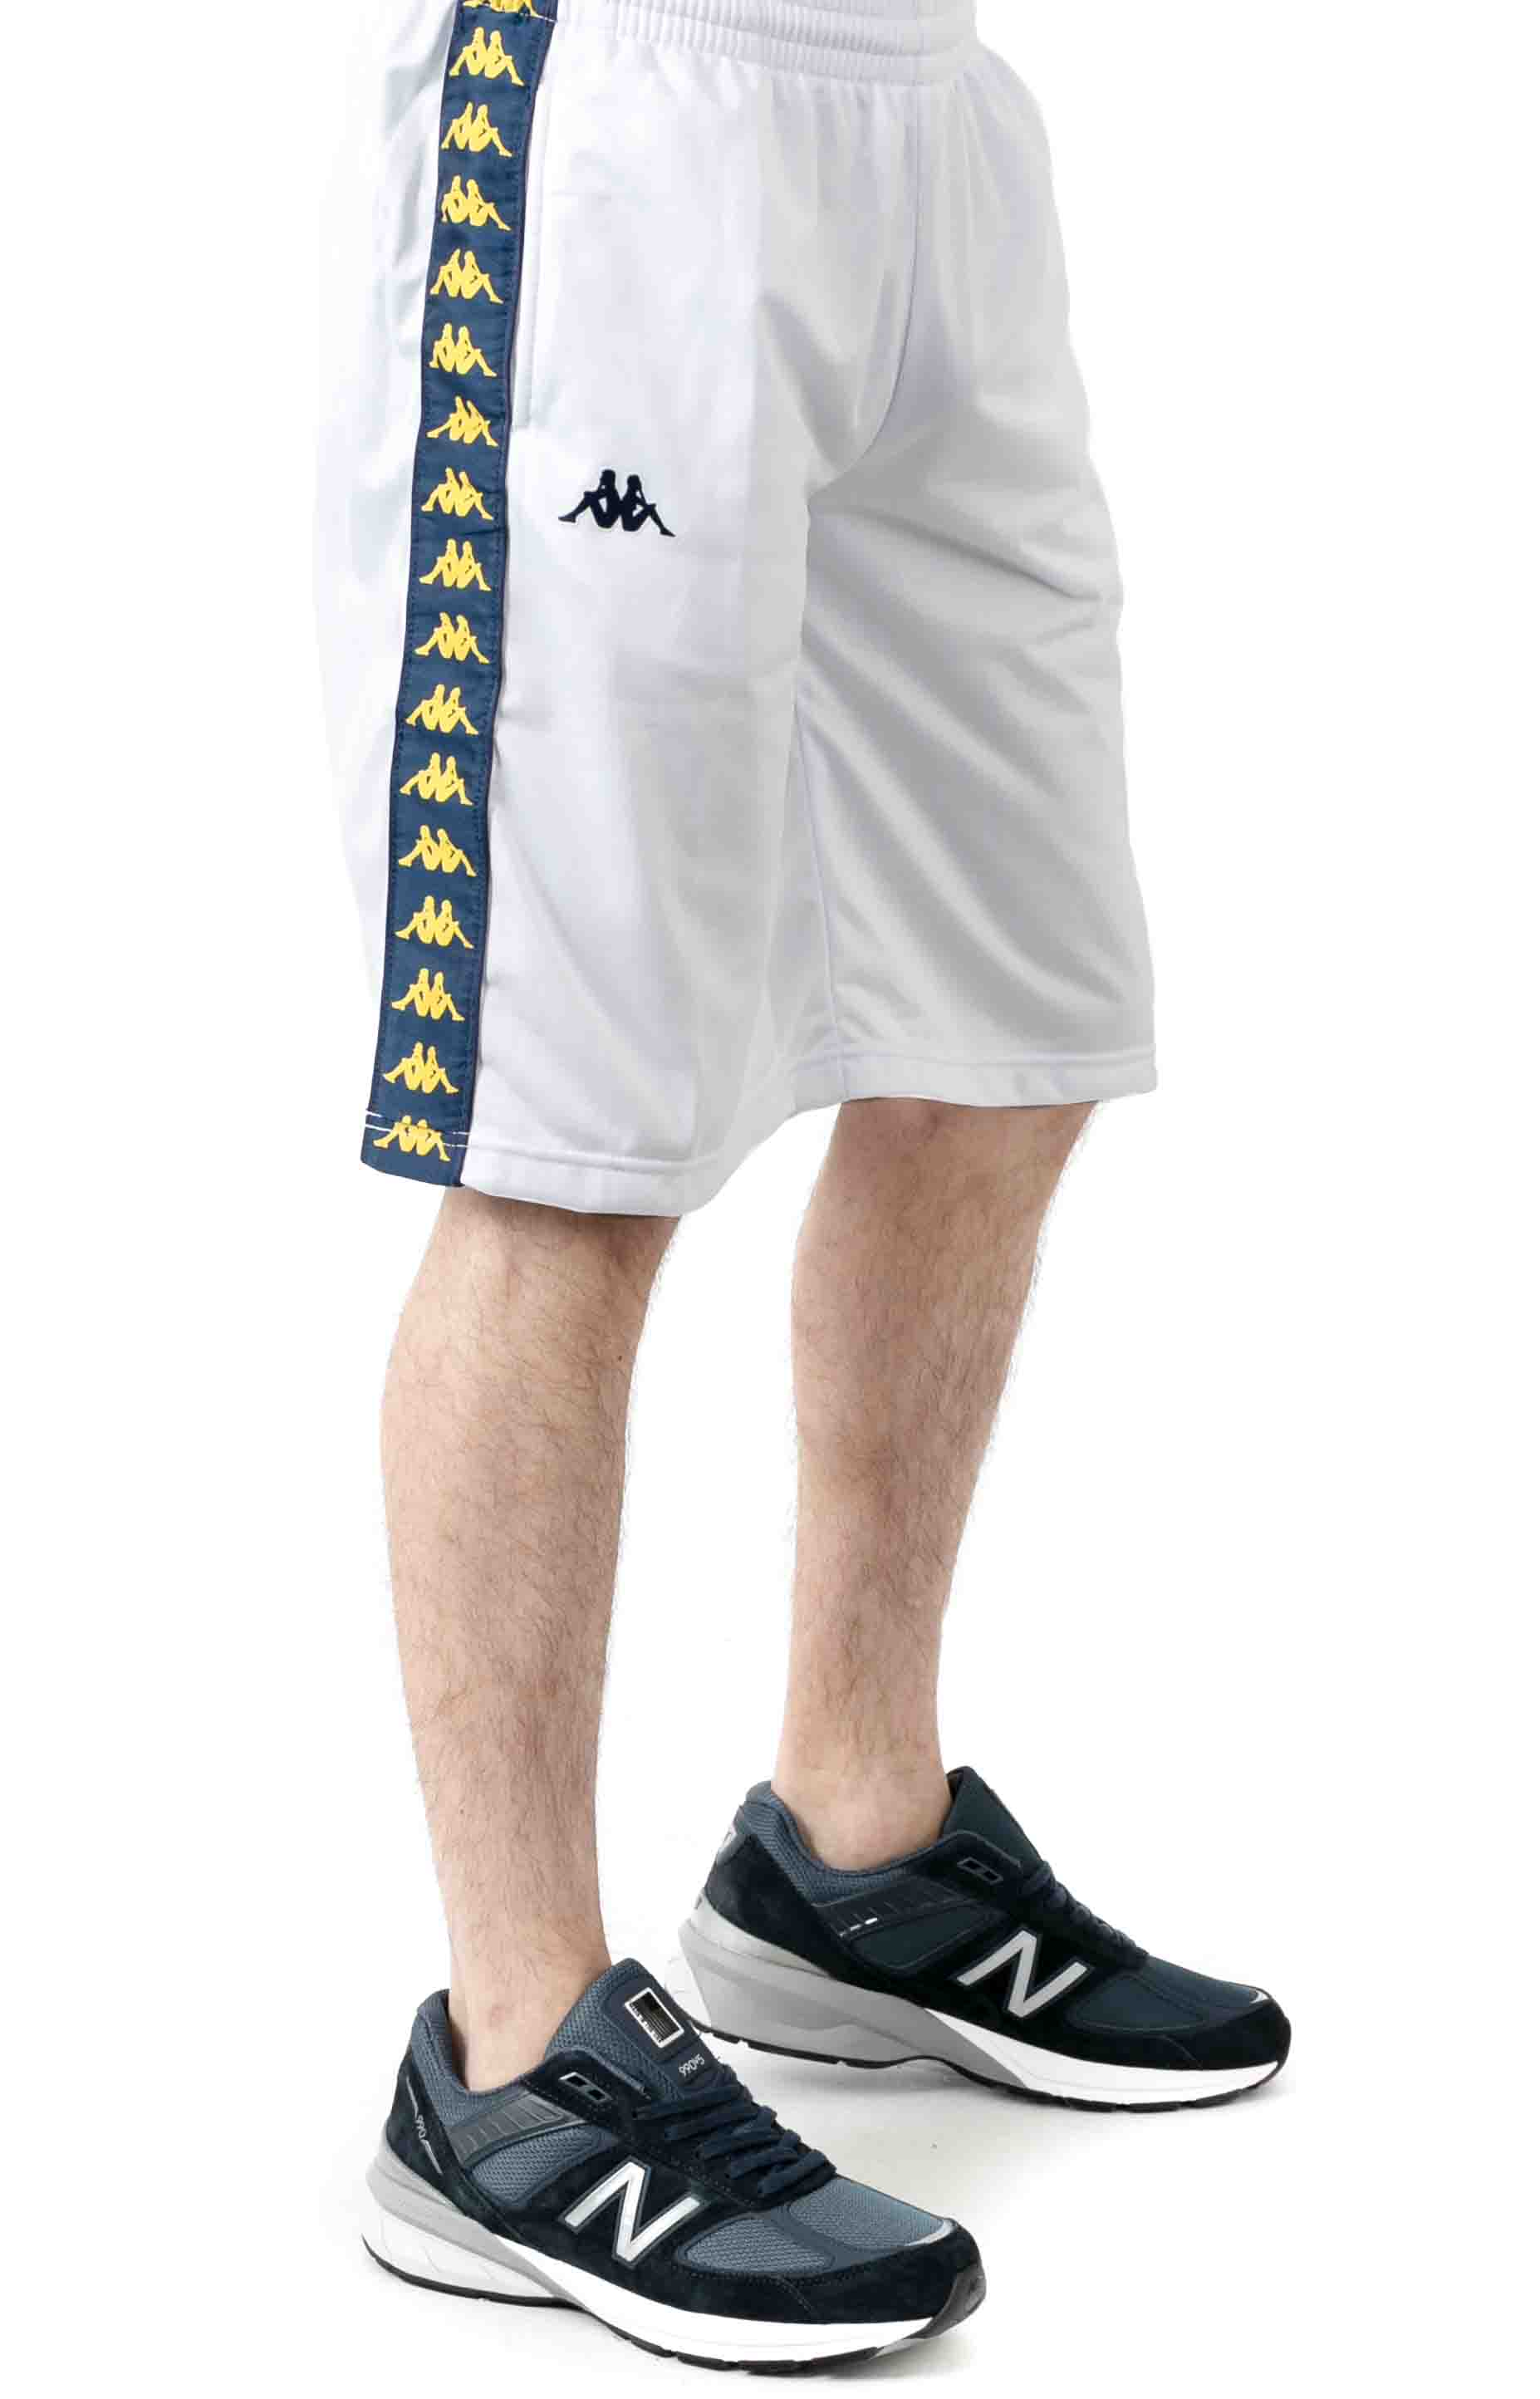 222 Banda Treadwellz Shorts - White/Blue Mid/Yellow